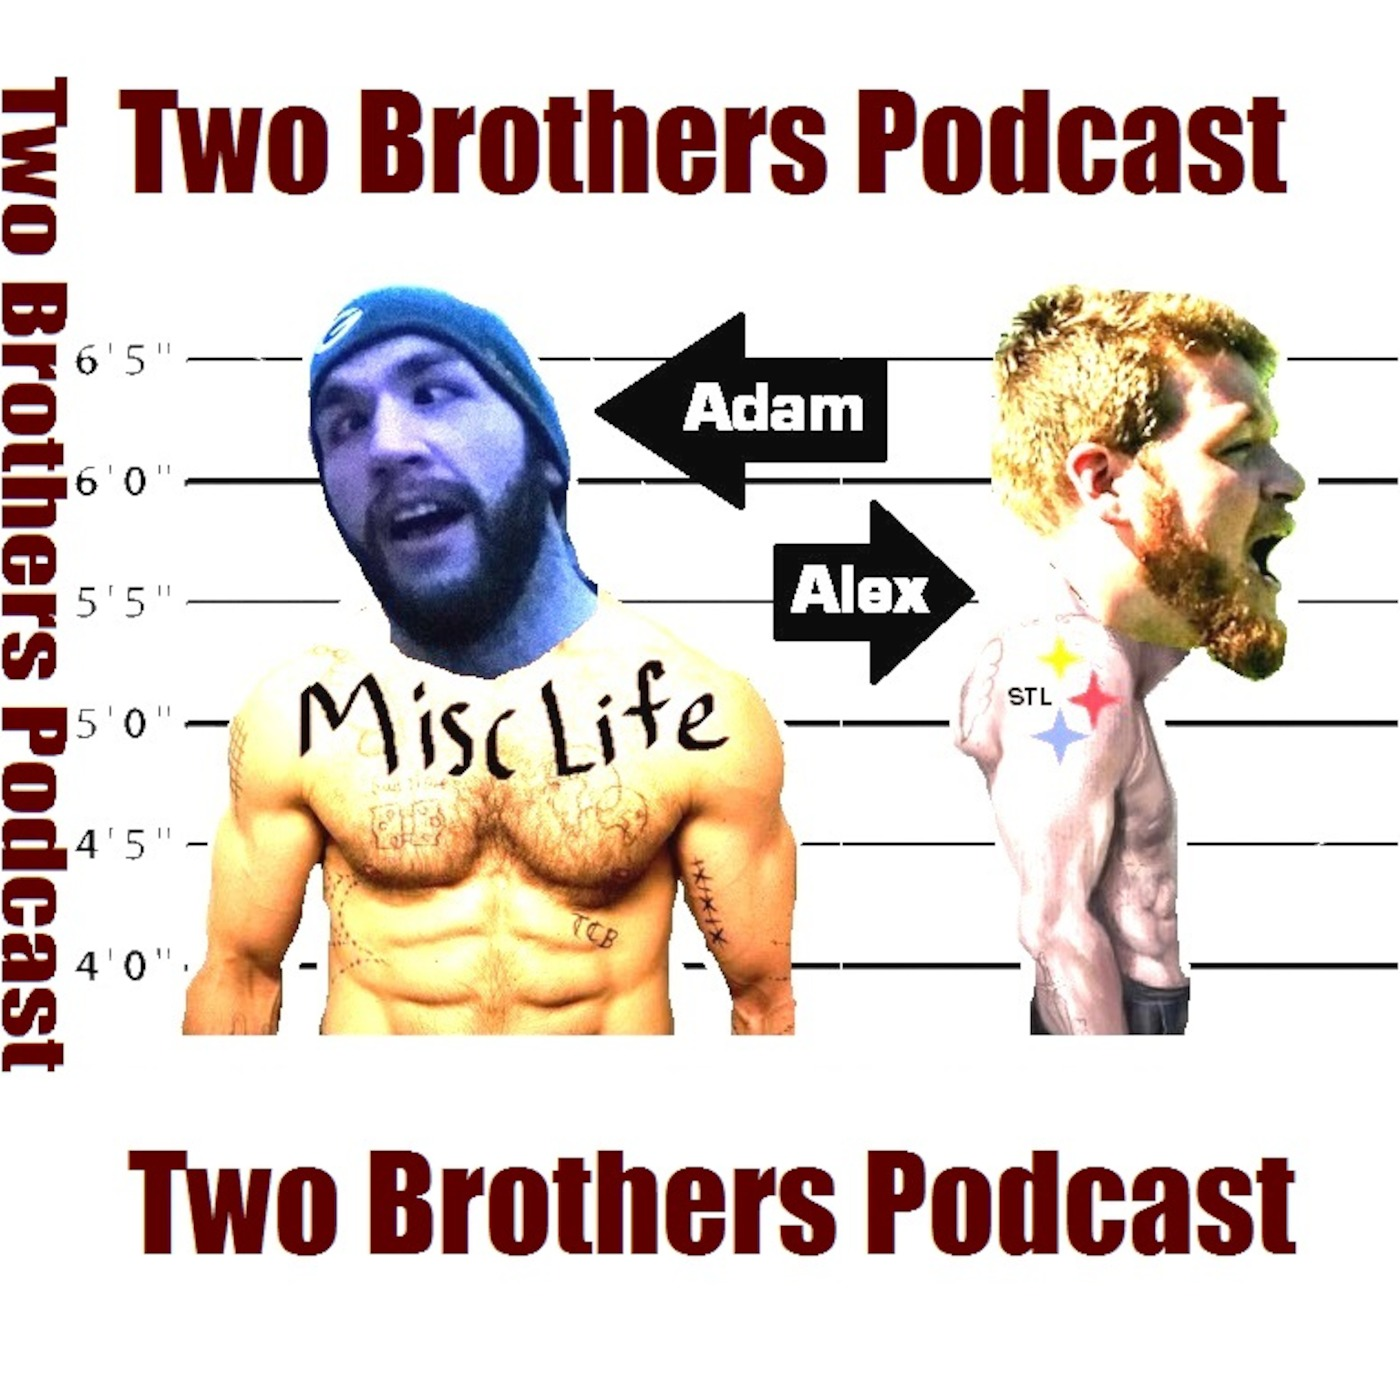 Two Brothers Podcast